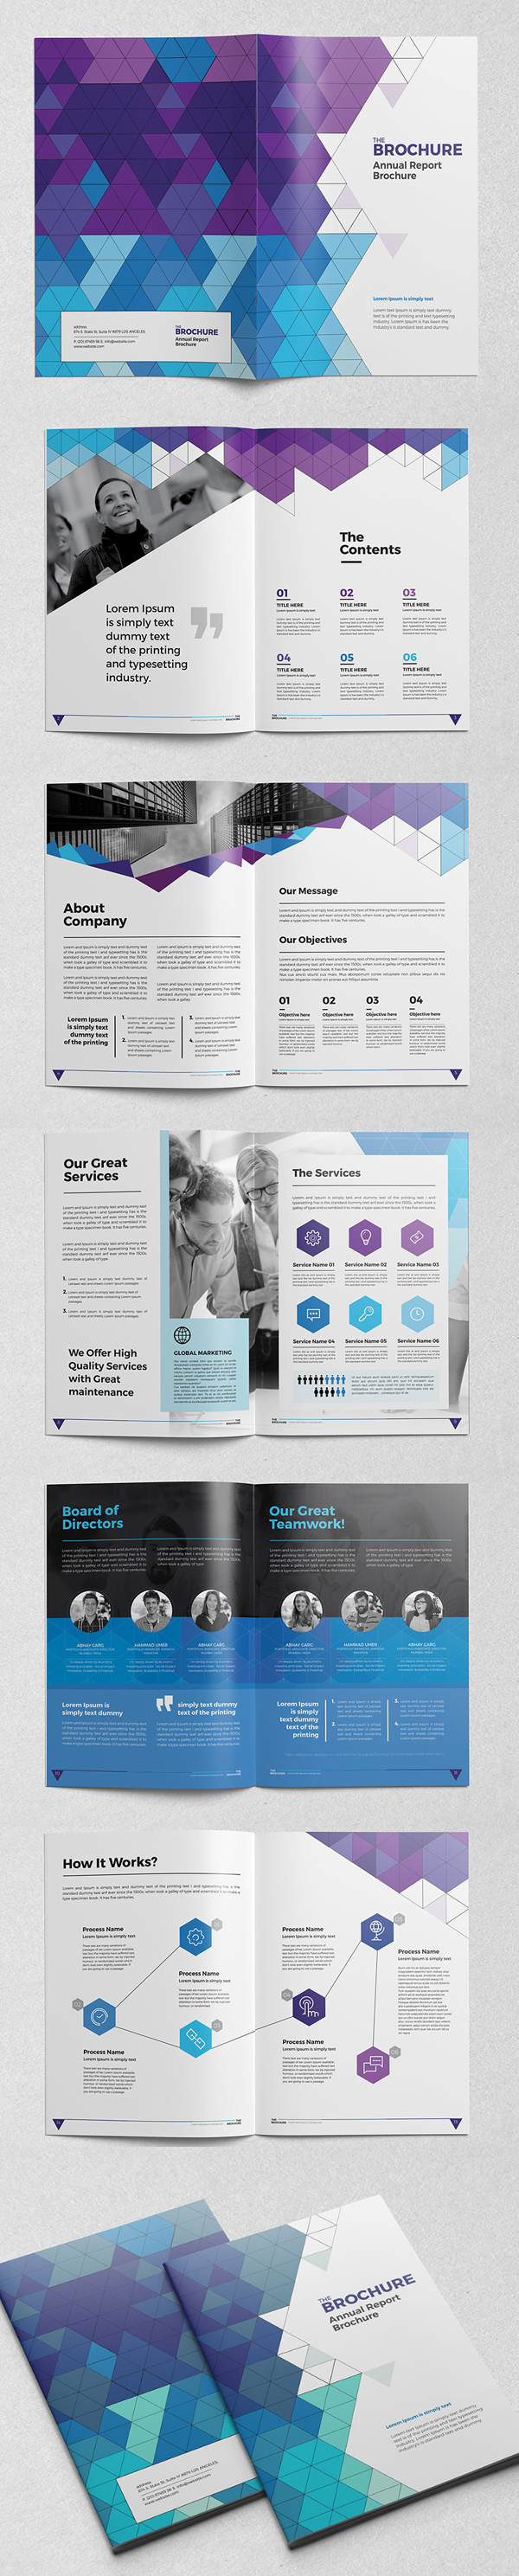 New catalog brochure design templates design graphic for Adobe brochure templates